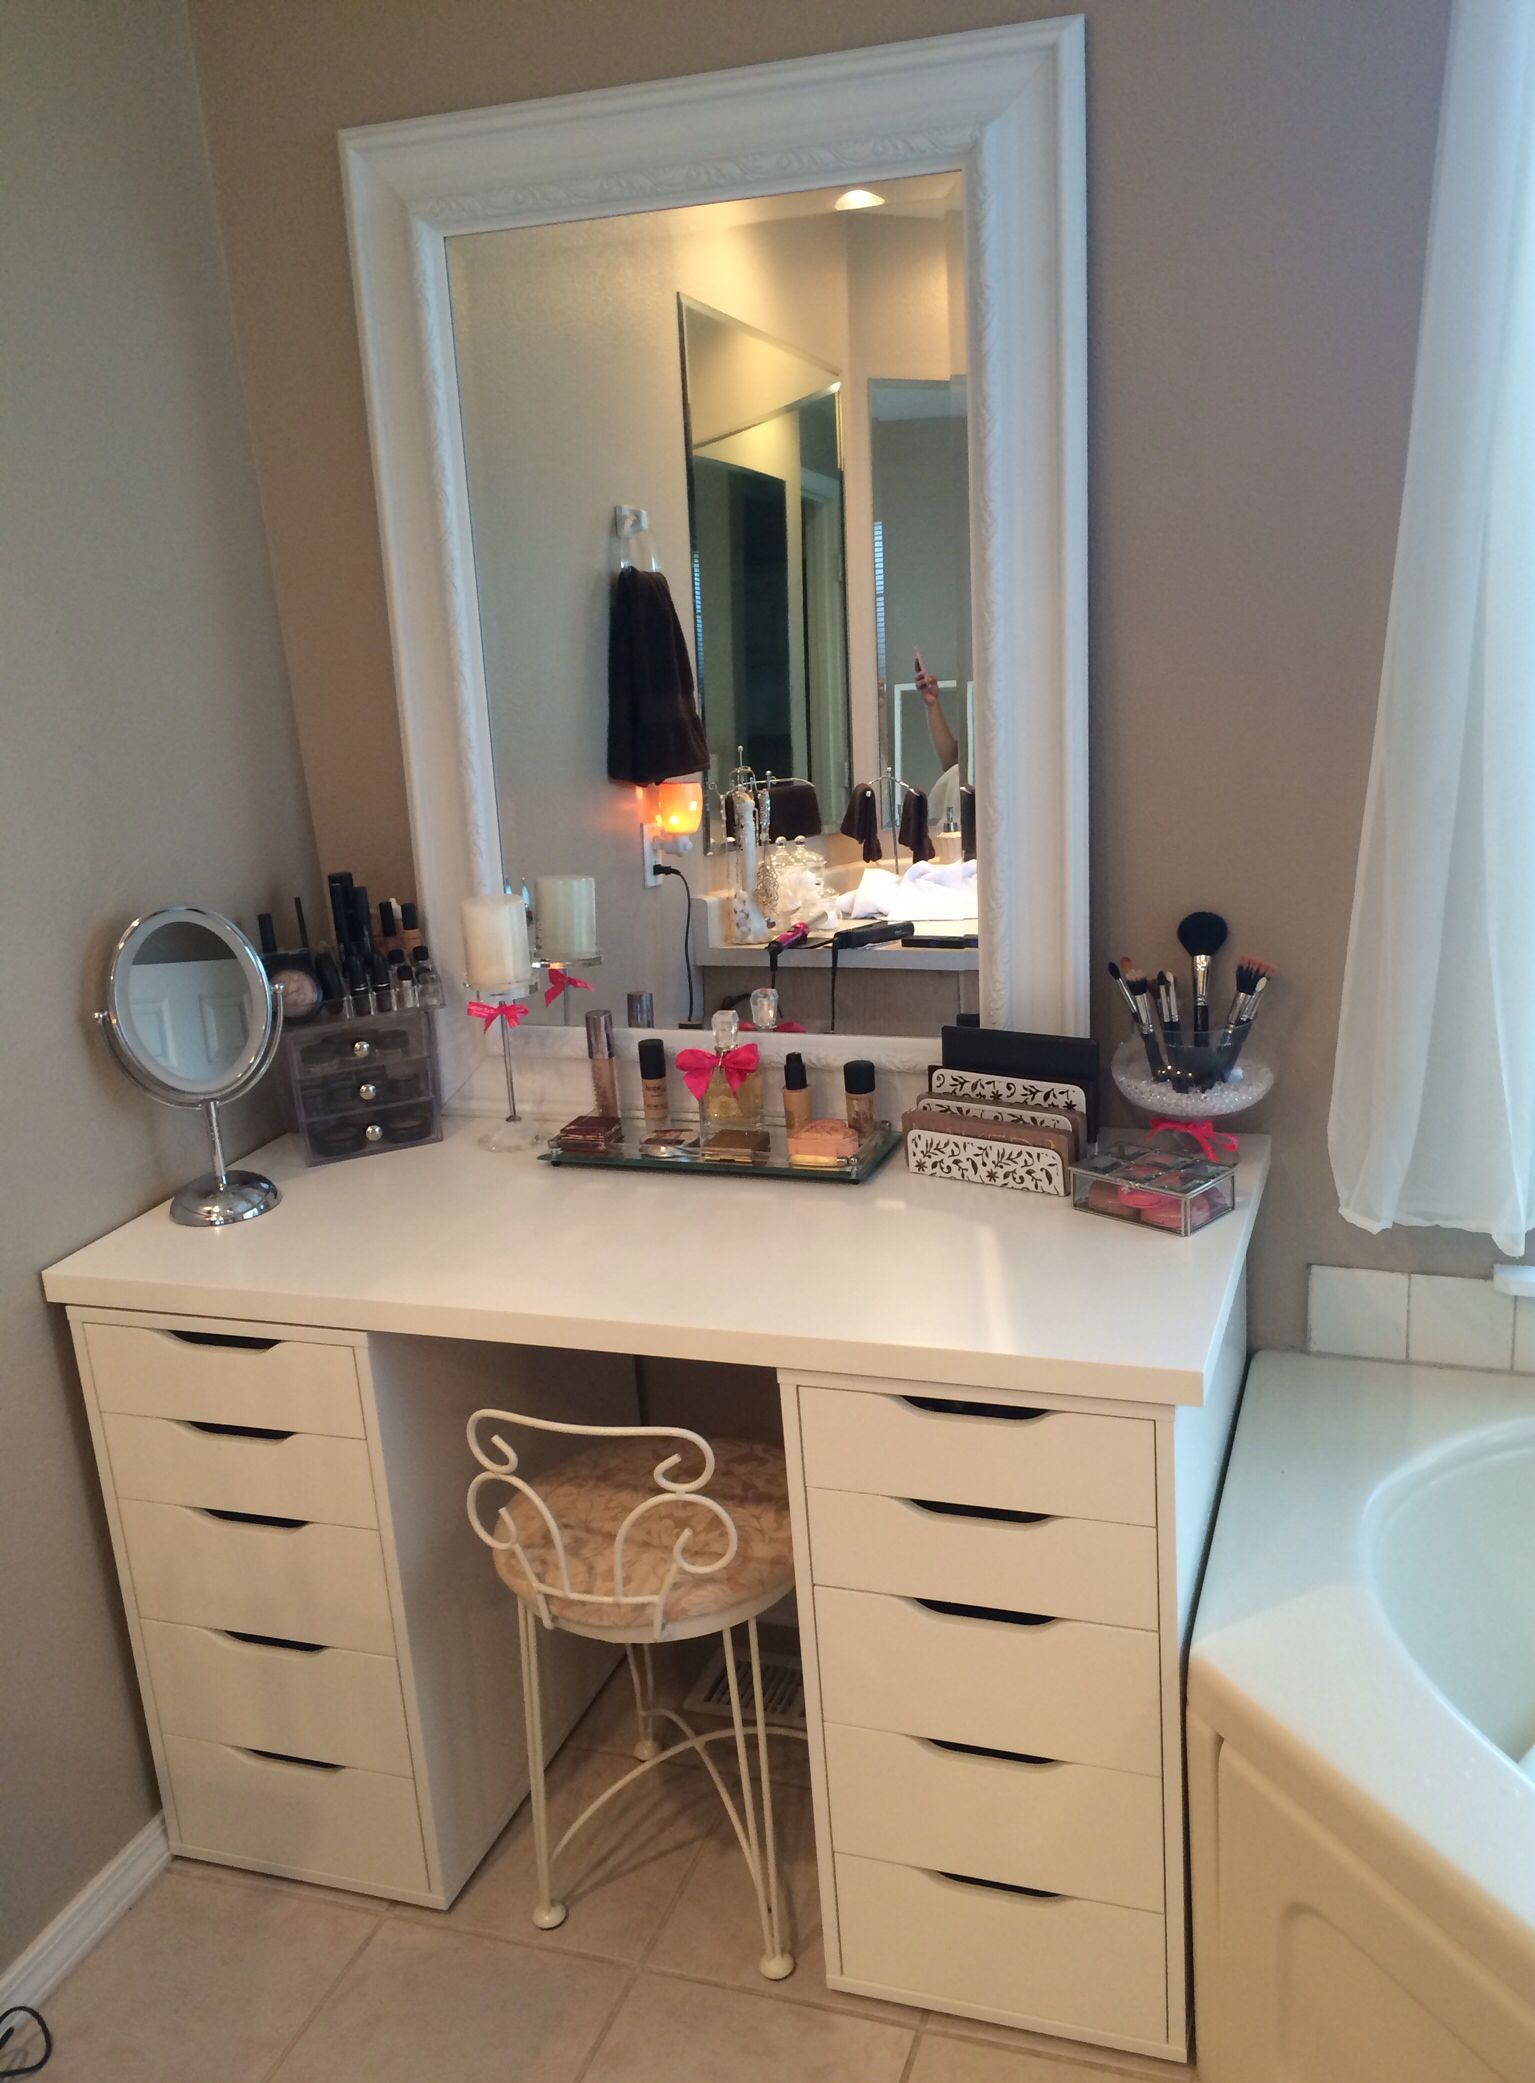 Makeup Vanity Ikea Drawers And Fred Meyer Mirror Modern Vanity Lighting Bedroom Makeup Vanity Bedroom Vanity